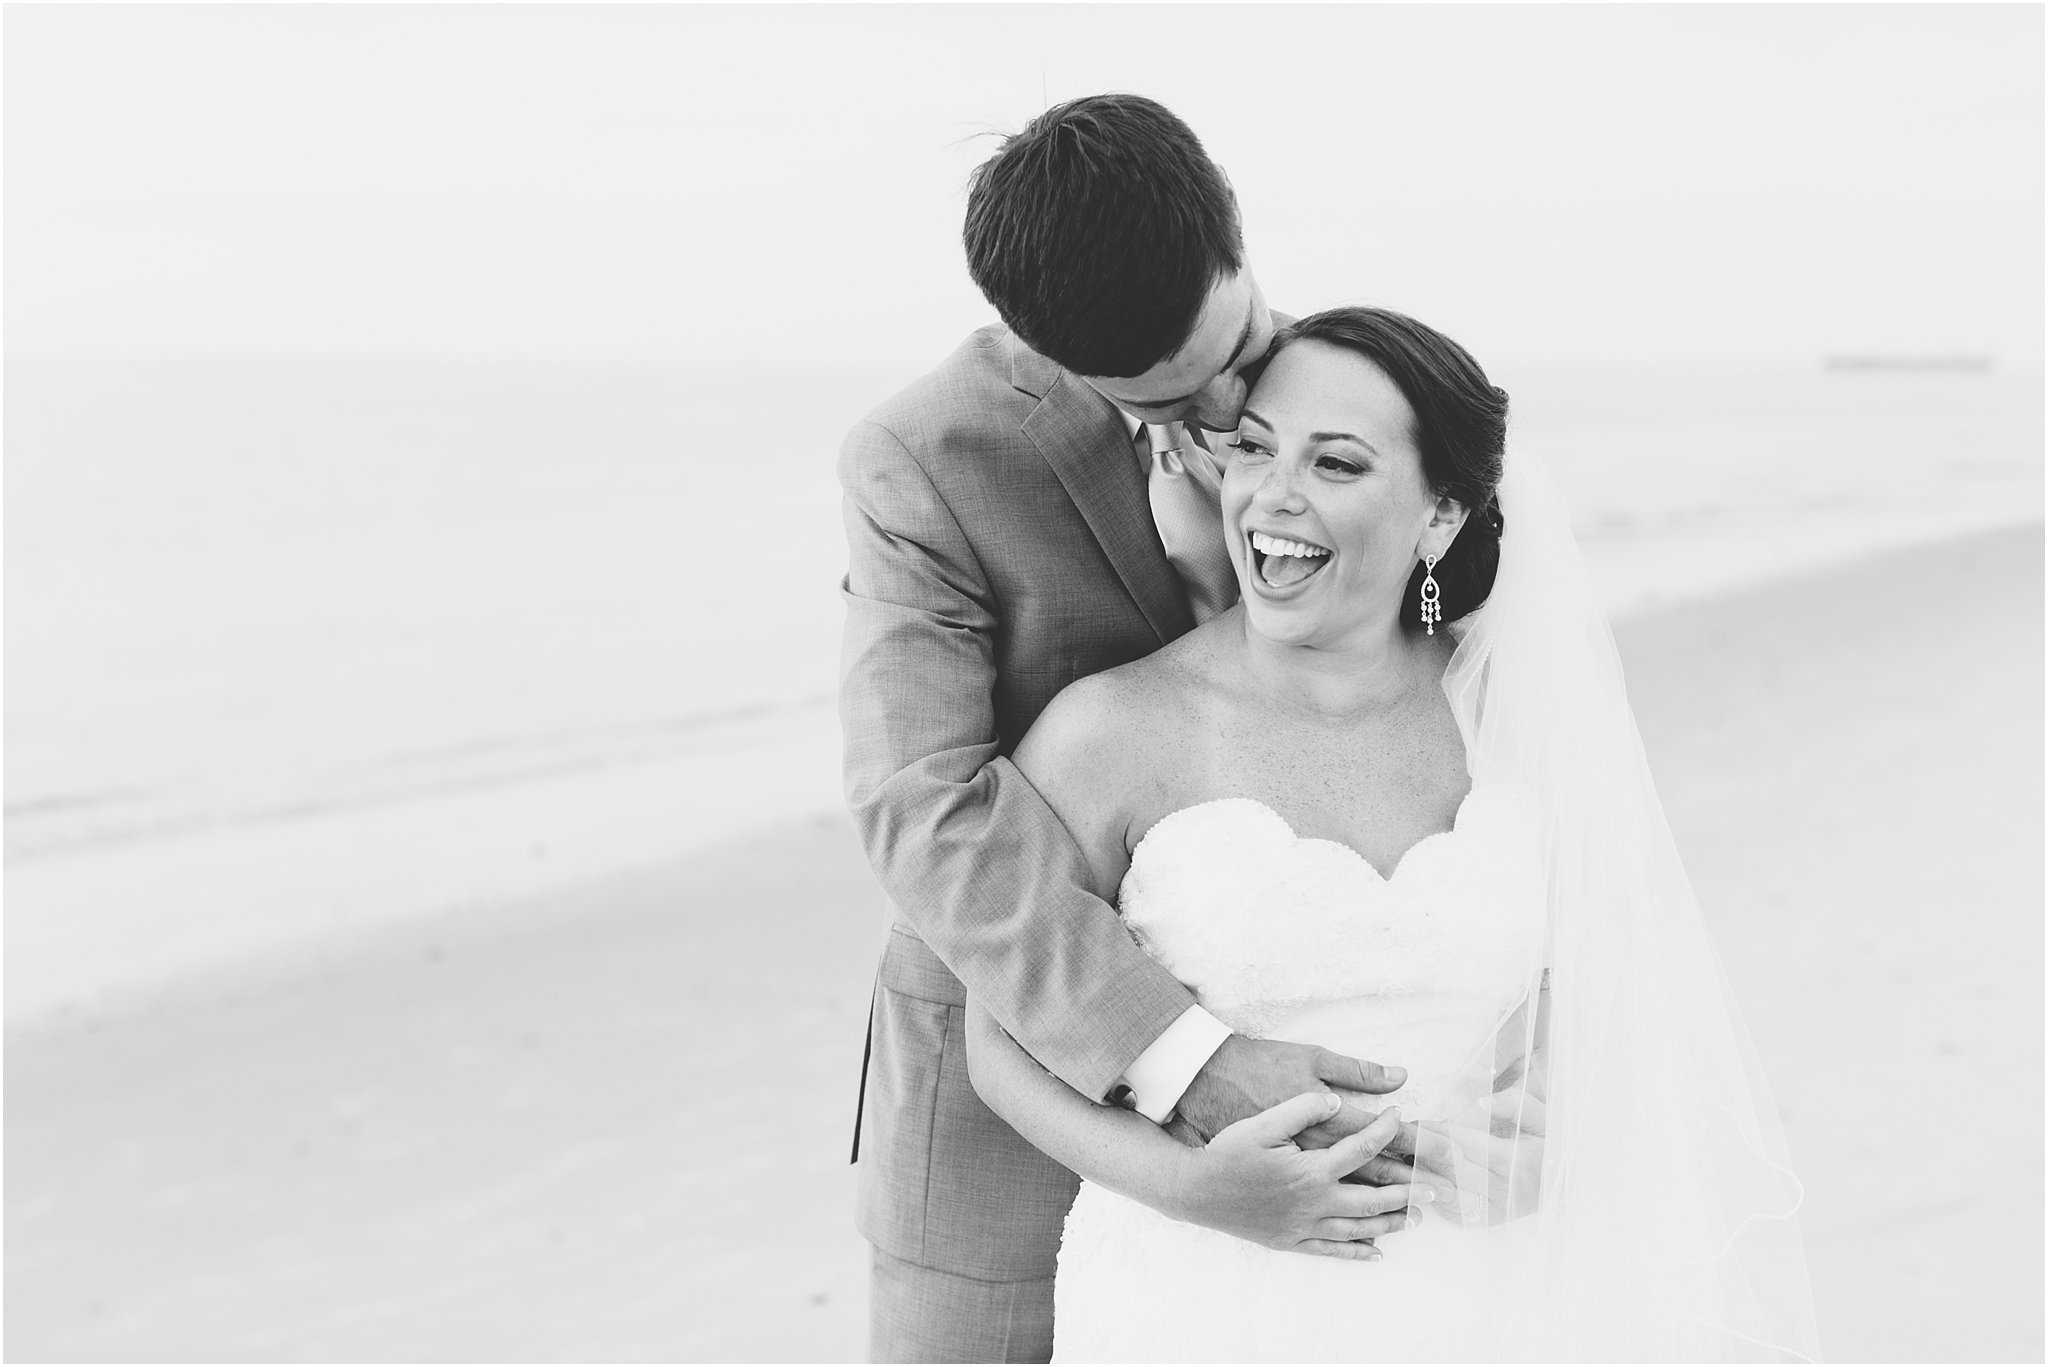 jessica_ryan_photography_wedding_photographs_must_haves_bride_top_wedding_photographs_virginia_wedding_photographer_2035